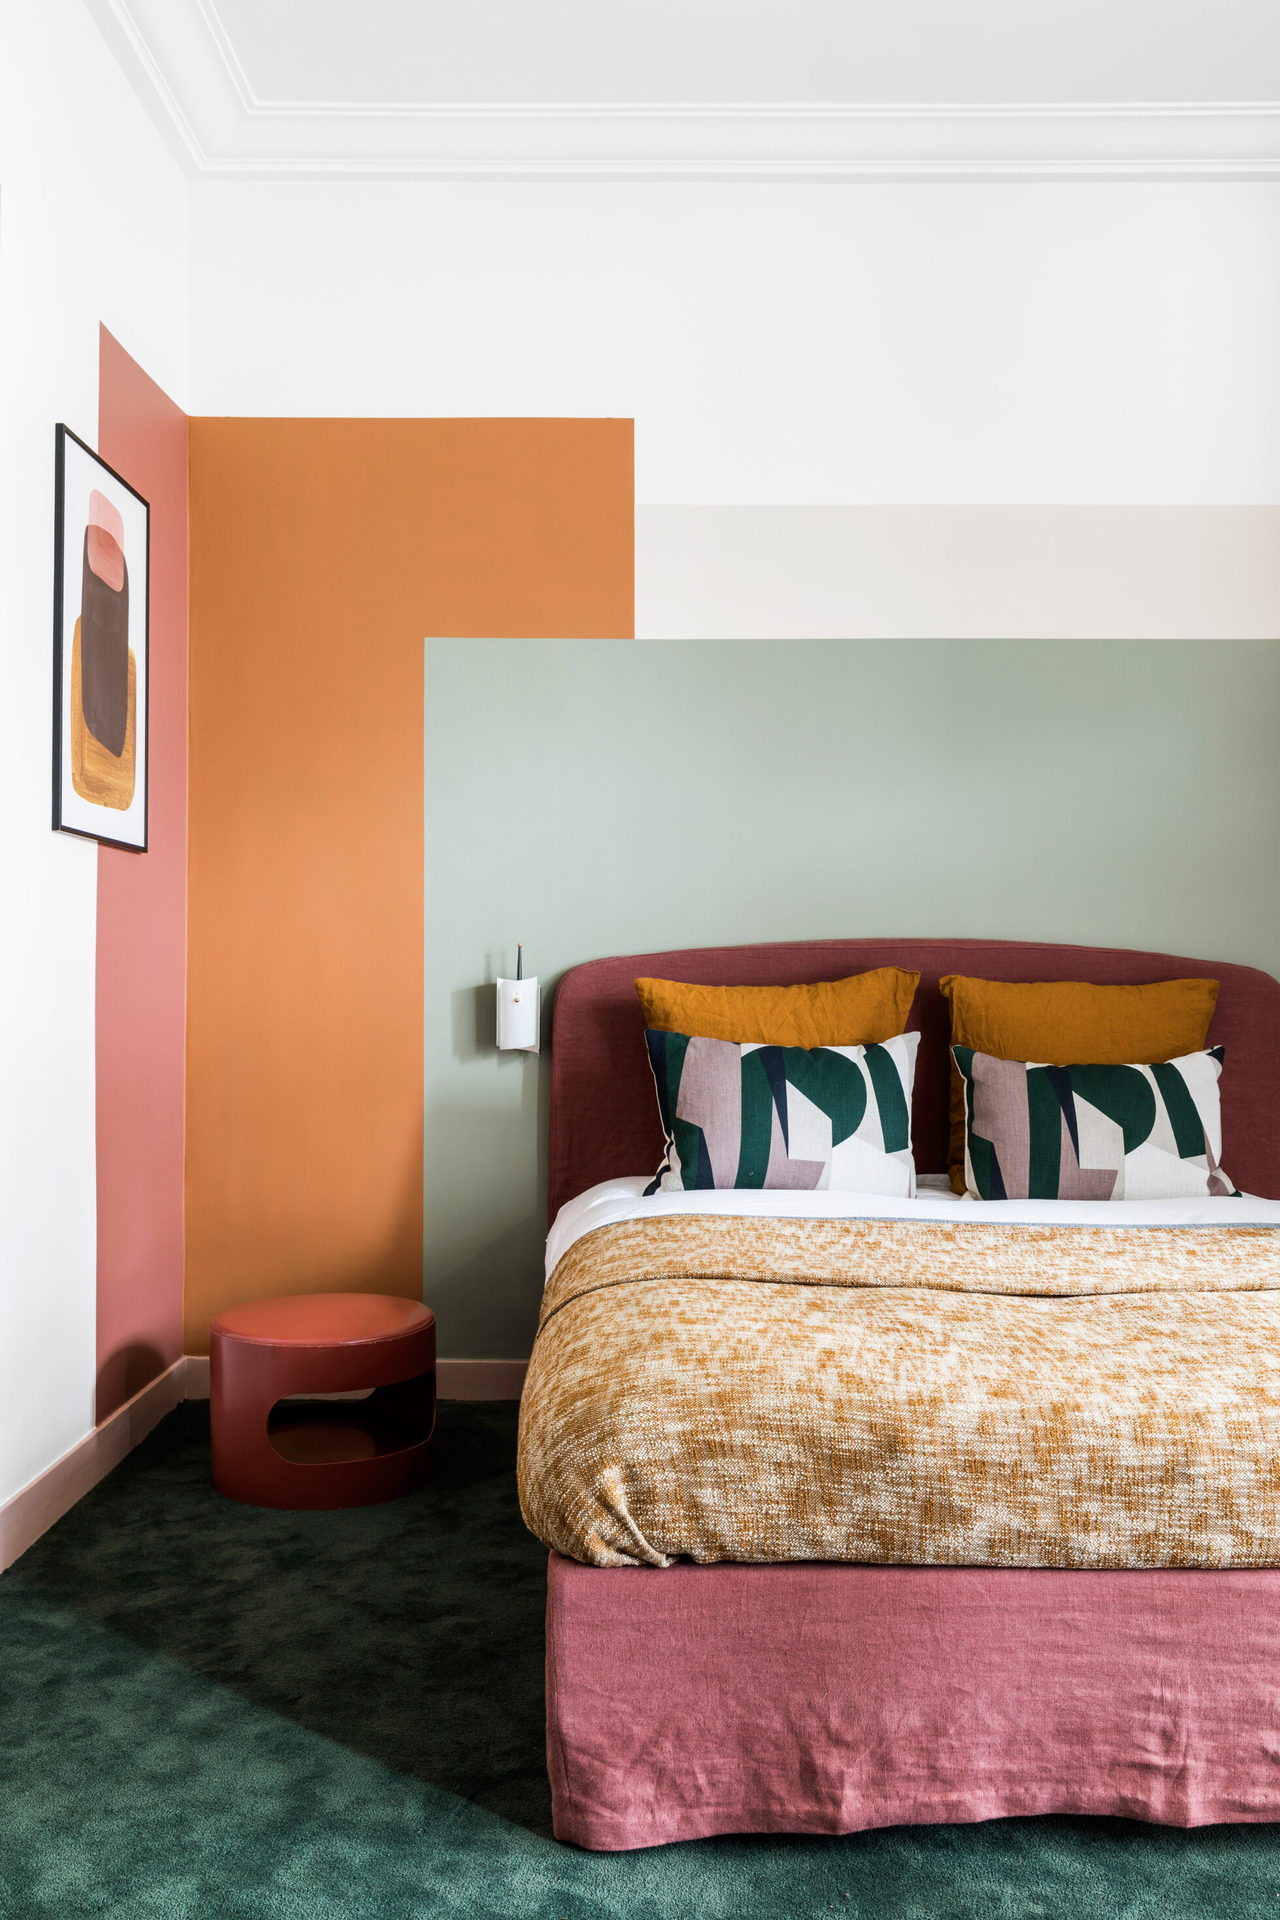 The Nordroom - Creative Headboard and Bedroom Styling Ideas (photography by Romain Ricard)